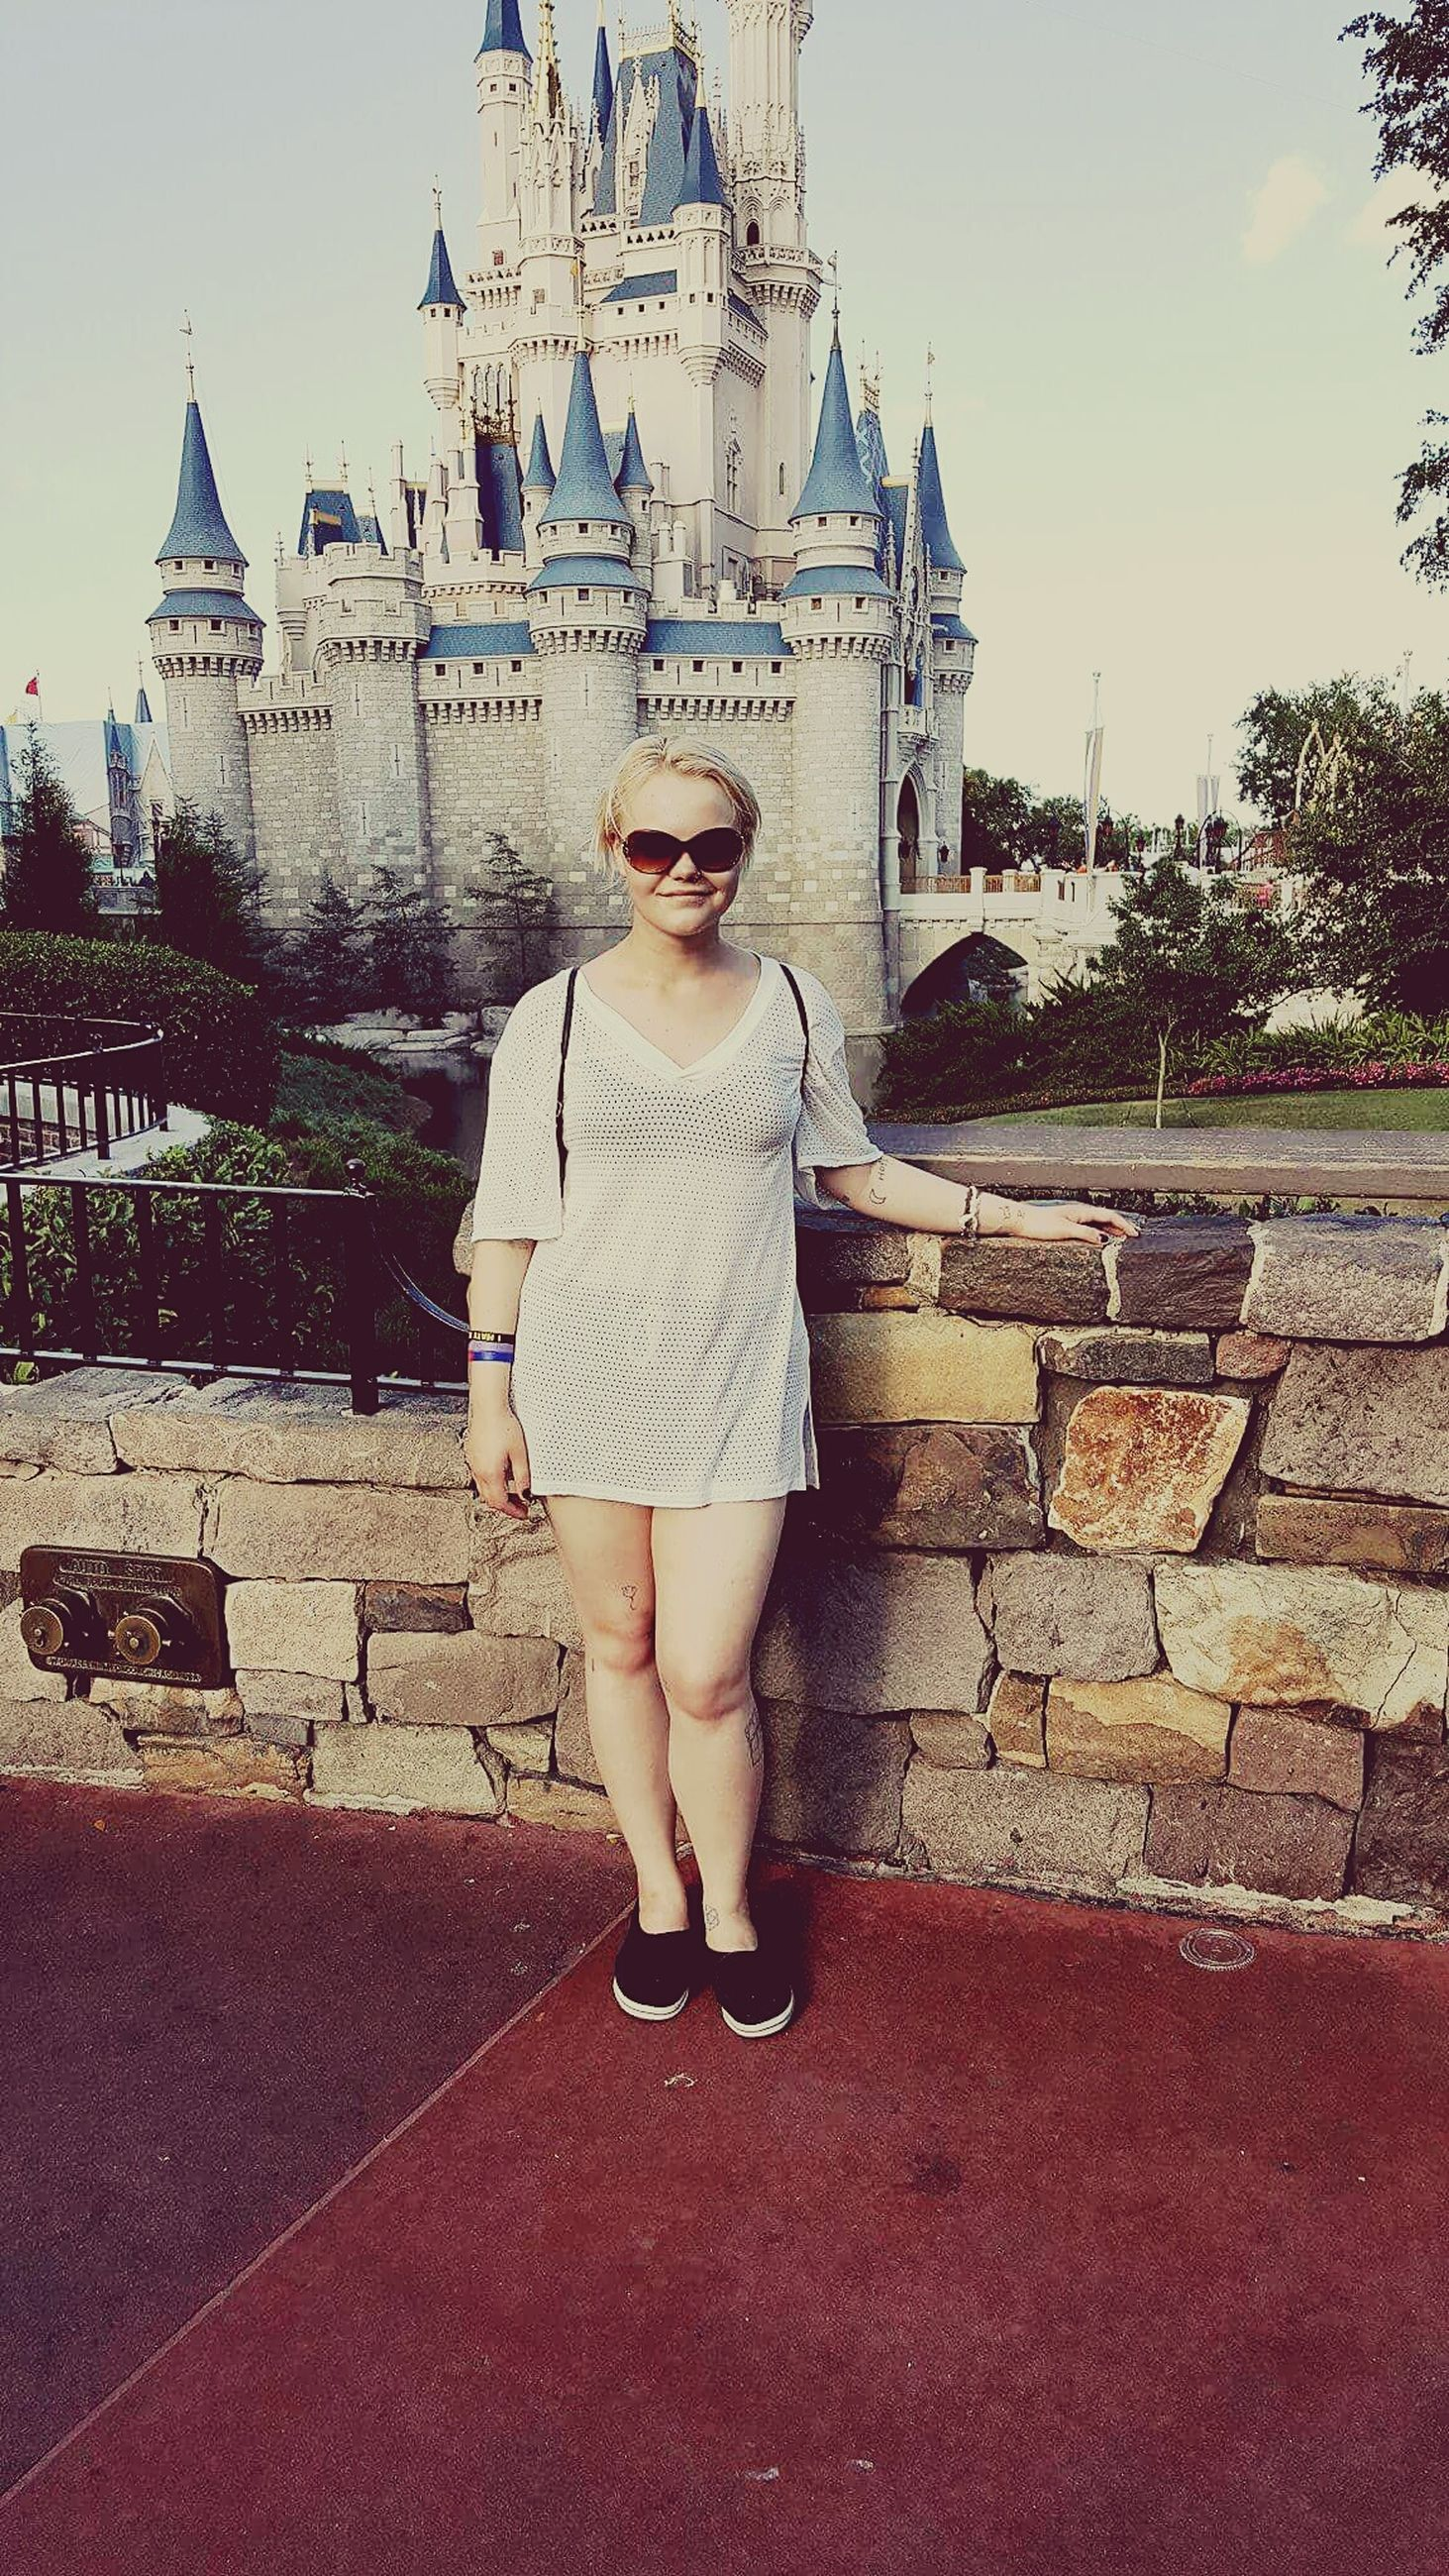 real people, architecture, building exterior, built structure, front view, young women, young adult, full length, one person, sunglasses, lifestyles, leisure activity, outdoors, looking at camera, casual clothing, day, standing, portrait, beautiful woman, travel destinations, smiling, retaining wall, sky